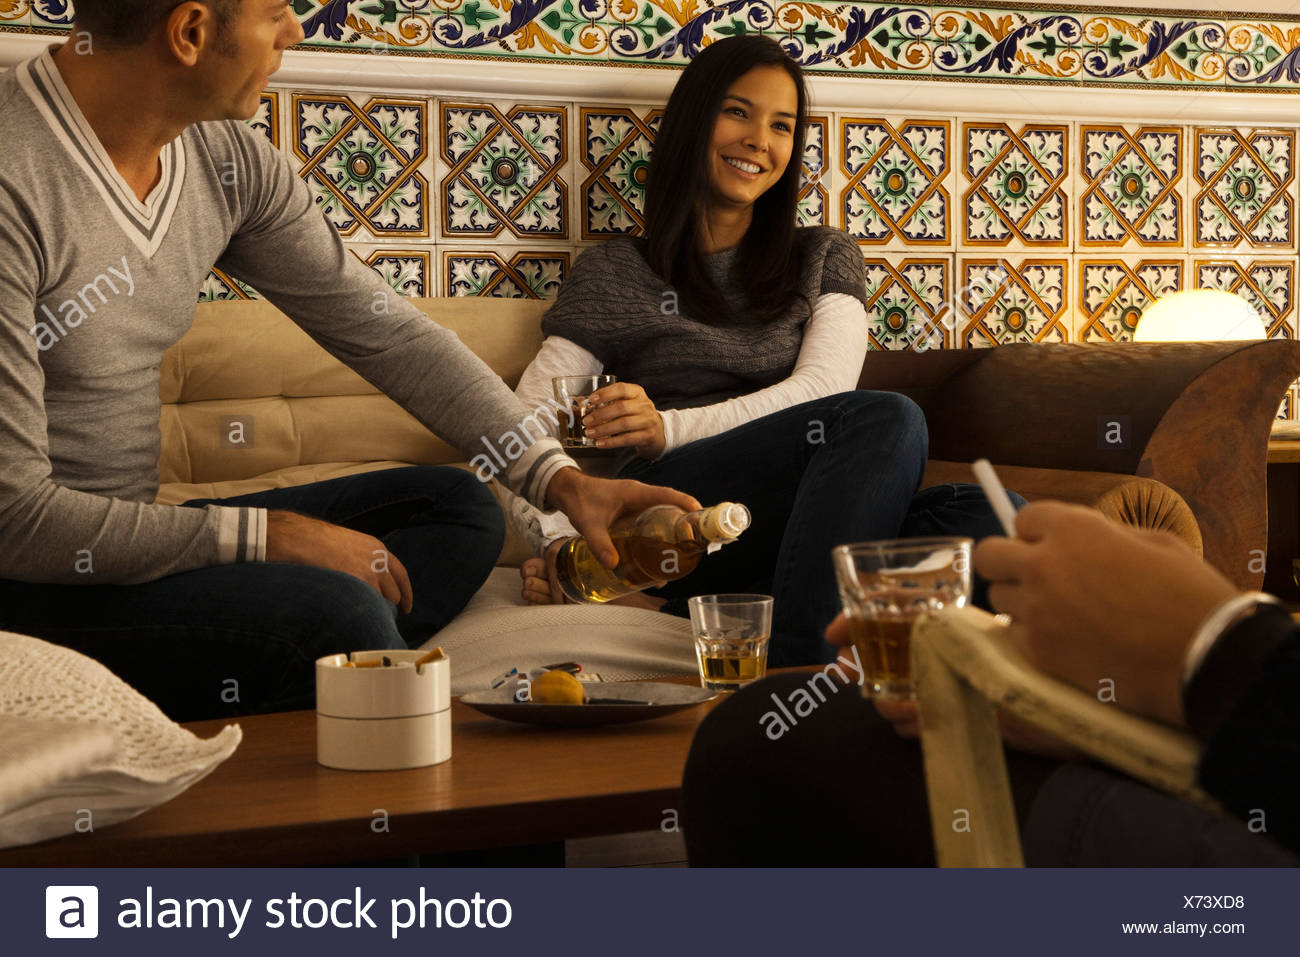 Friends hanging out together in living room - Stock Image